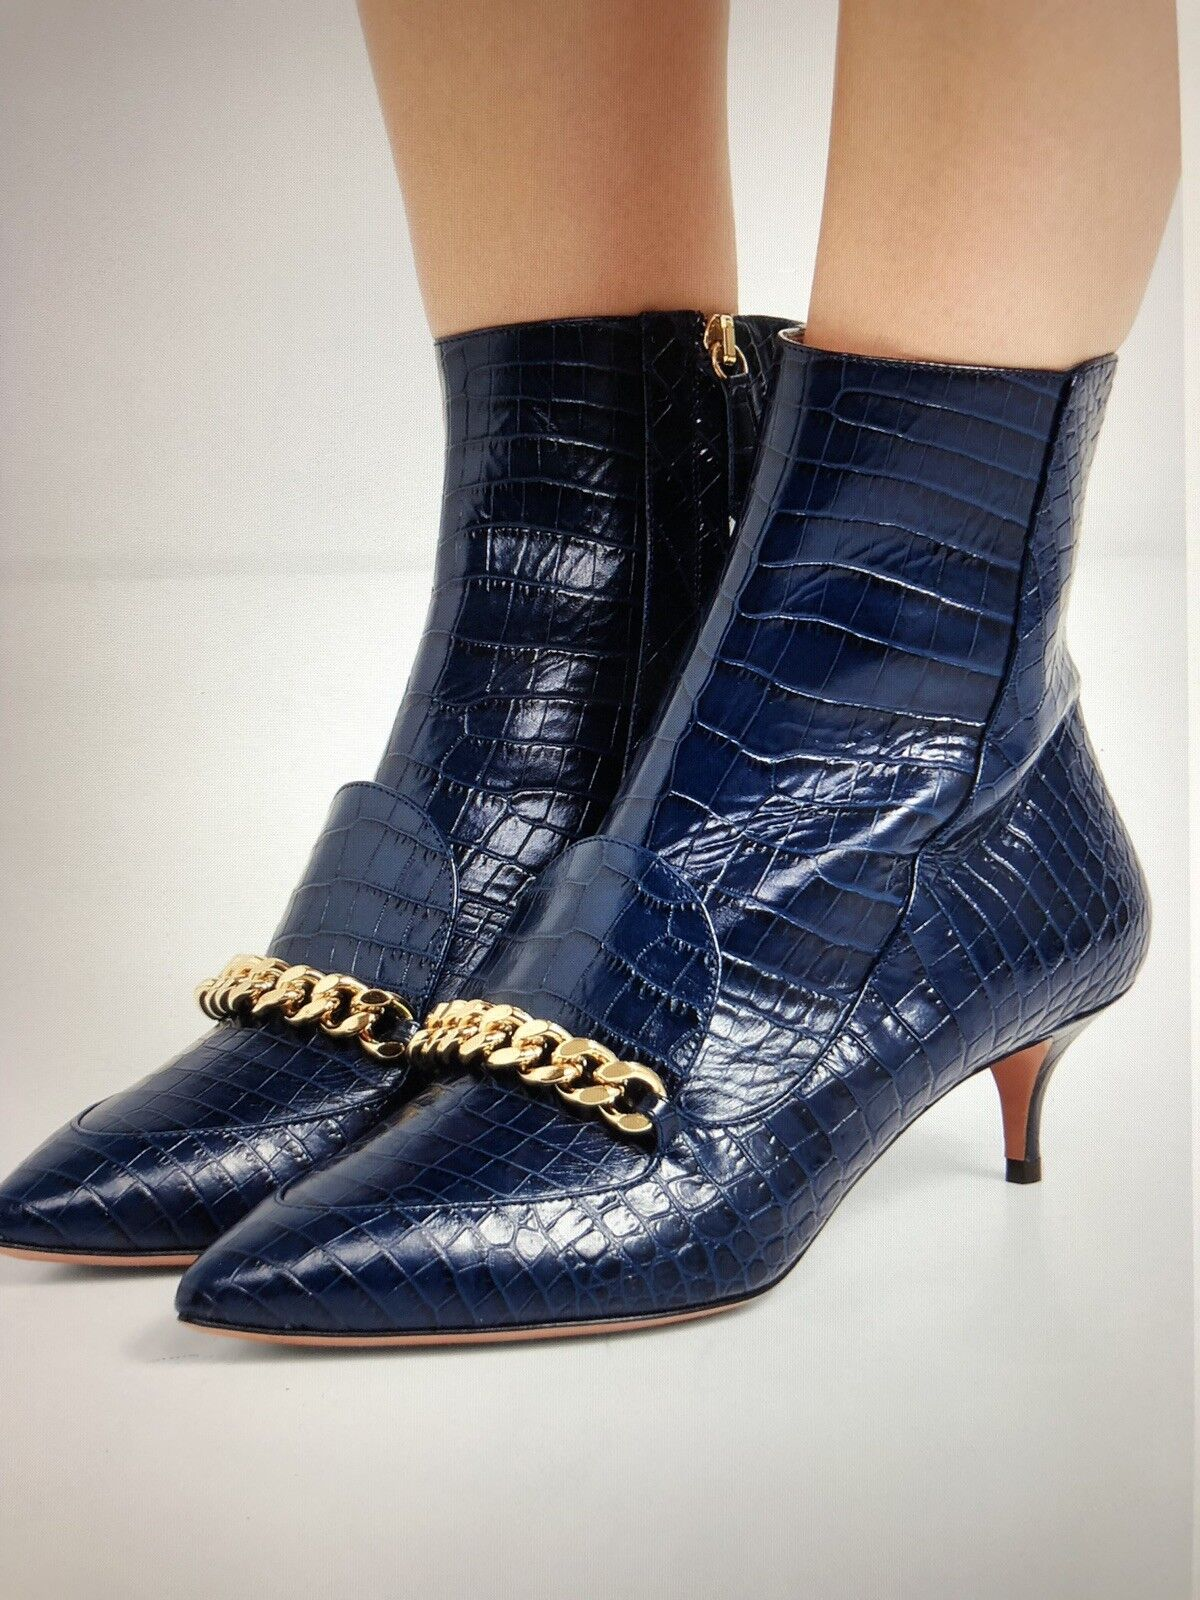 New ASOS Navy Navy Navy Croco Effect bottes Taille 10 f0676d